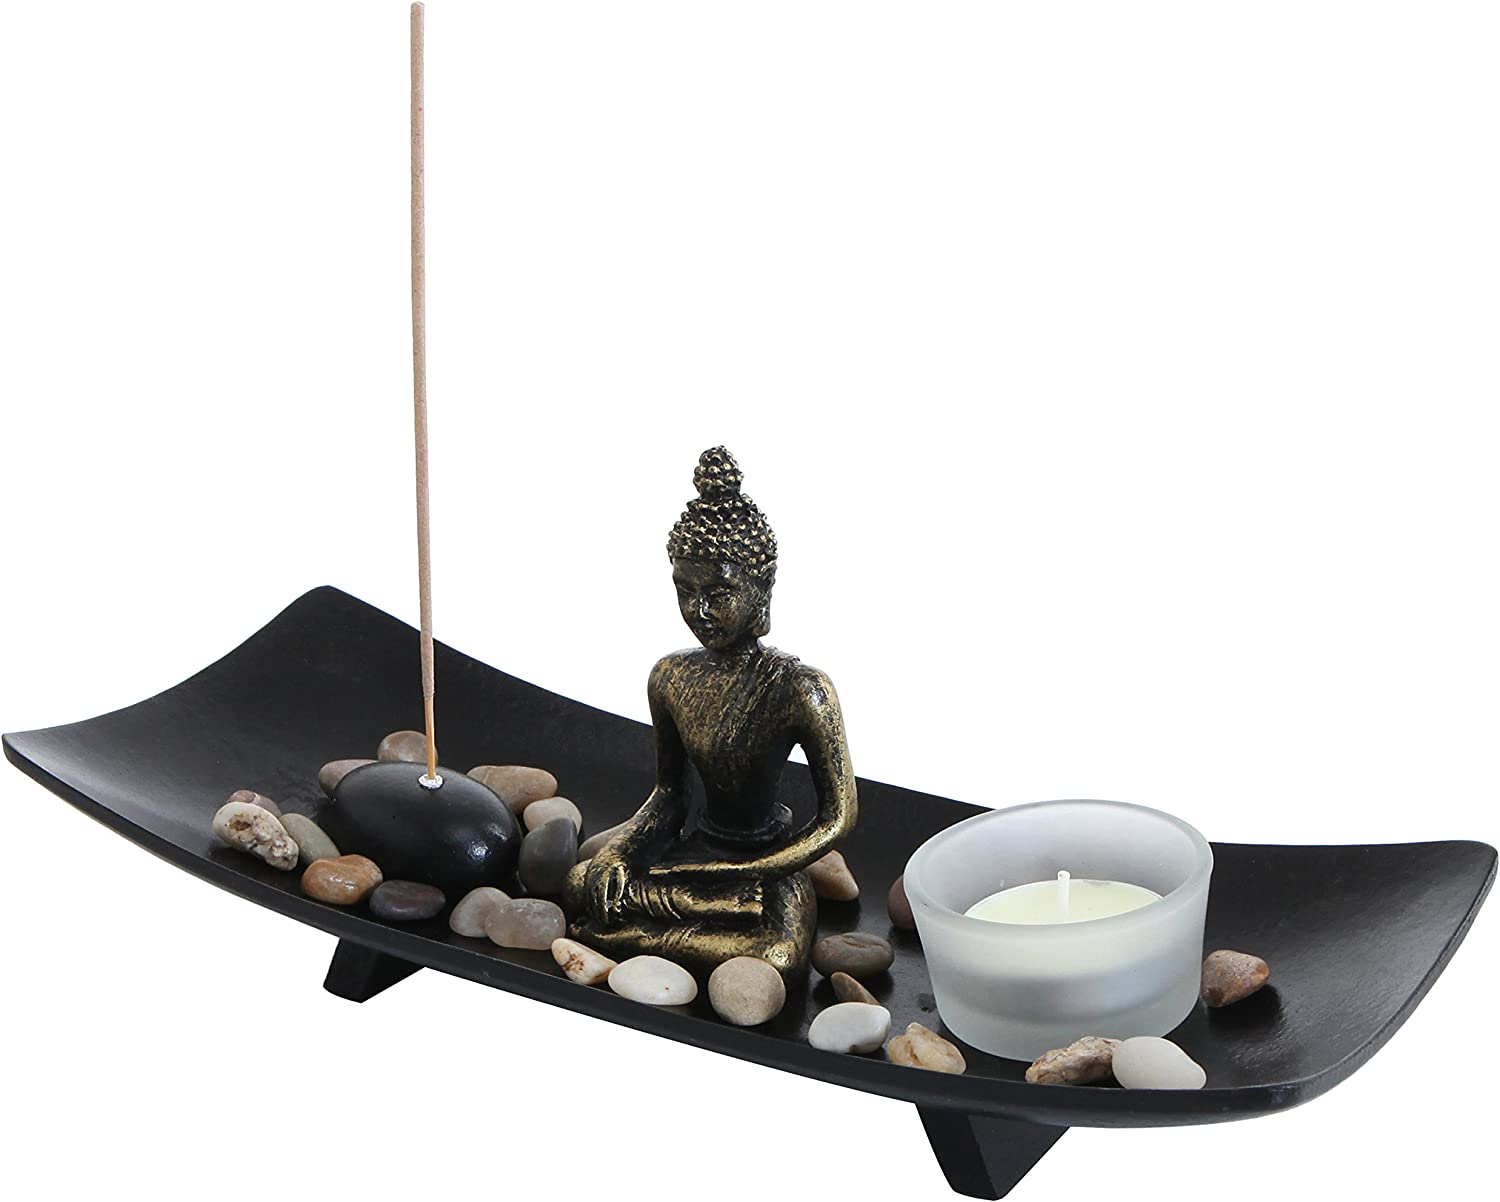 MyGift Zen Garden Buddha Statue with Glass Tealight Candle & Incense Burner Holder